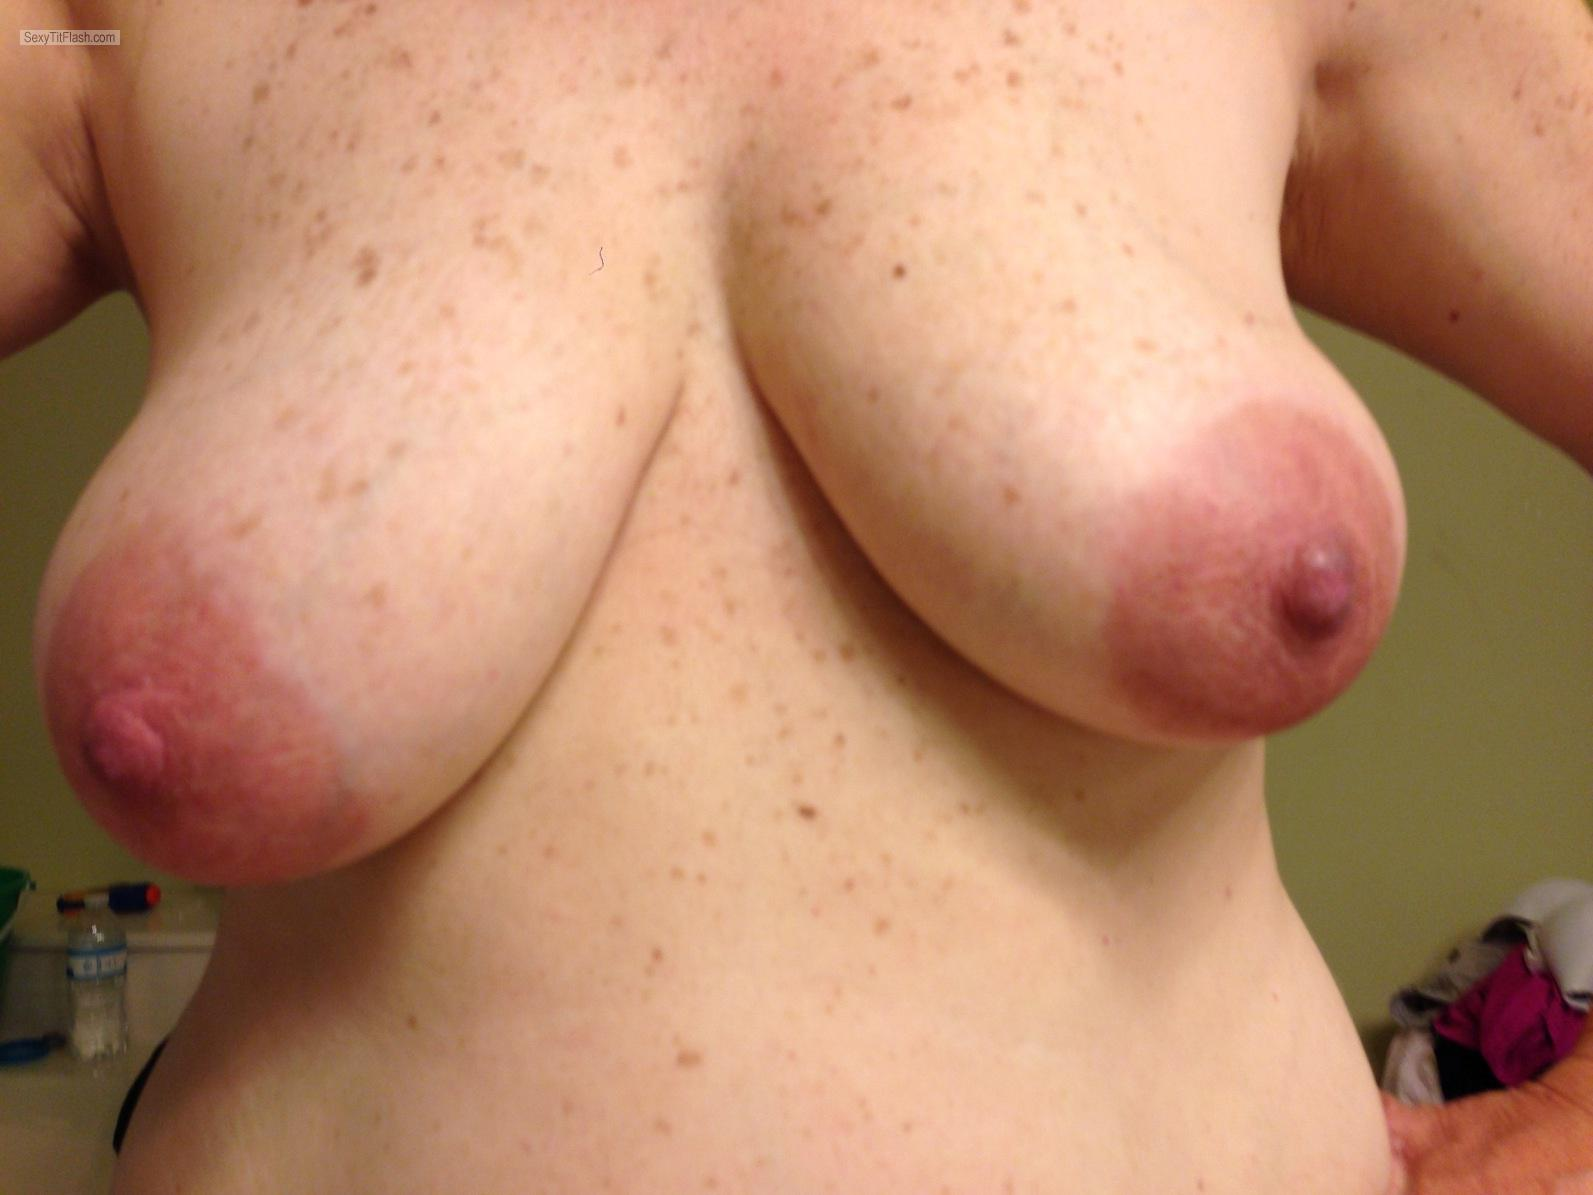 Tit Flash: My Medium Tits (Selfie) - Kimmy from Australia